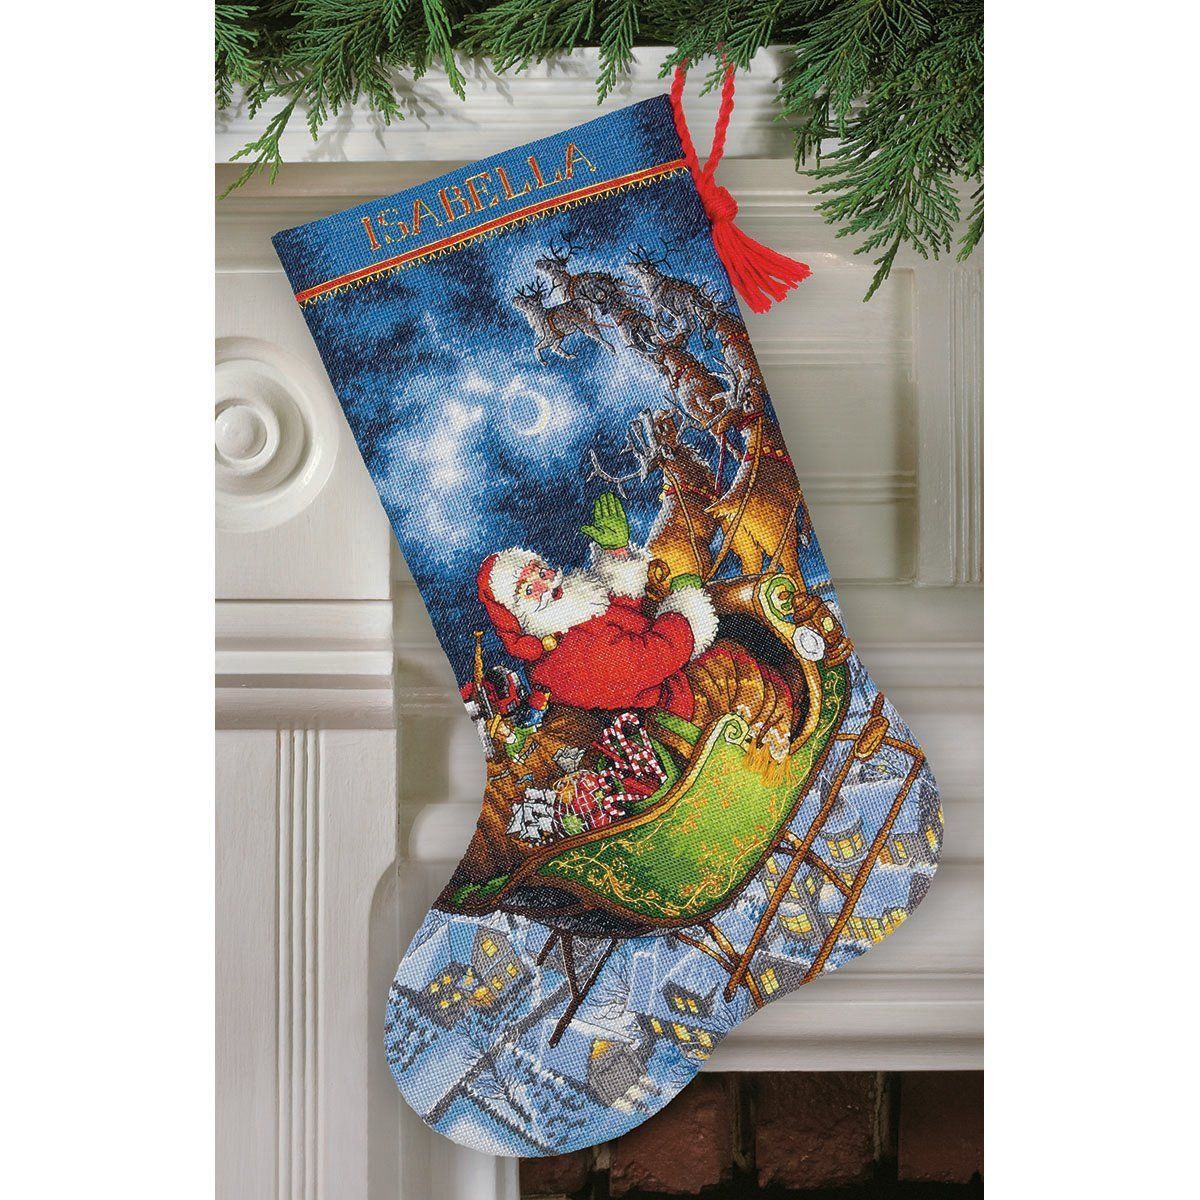 16 Dimensions Gold Collection Counted Cross Stitch Santas Flight Personalized Christmas Stocking Kit 16 Count Grey Aida